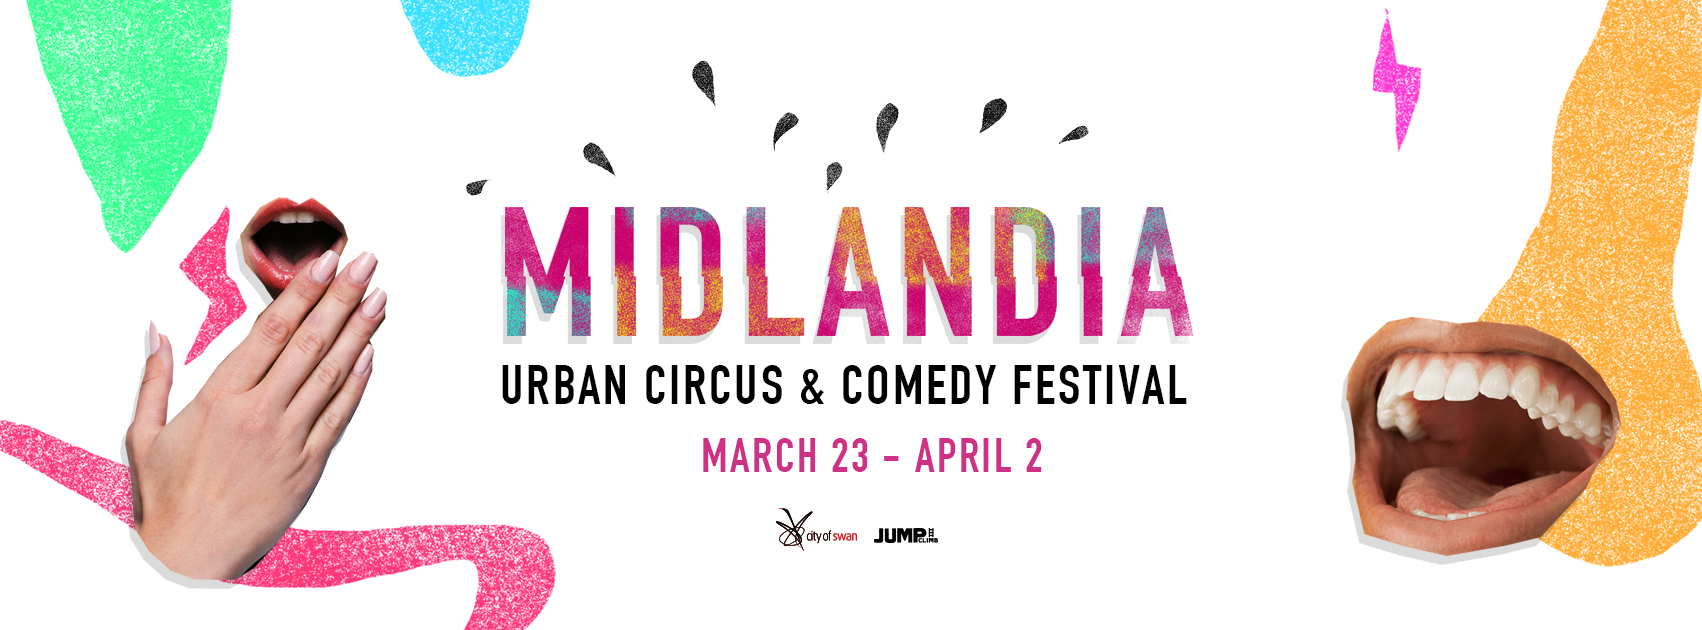 Tickets for Midlandia [Sideshows] in Midland from Ticketbooth